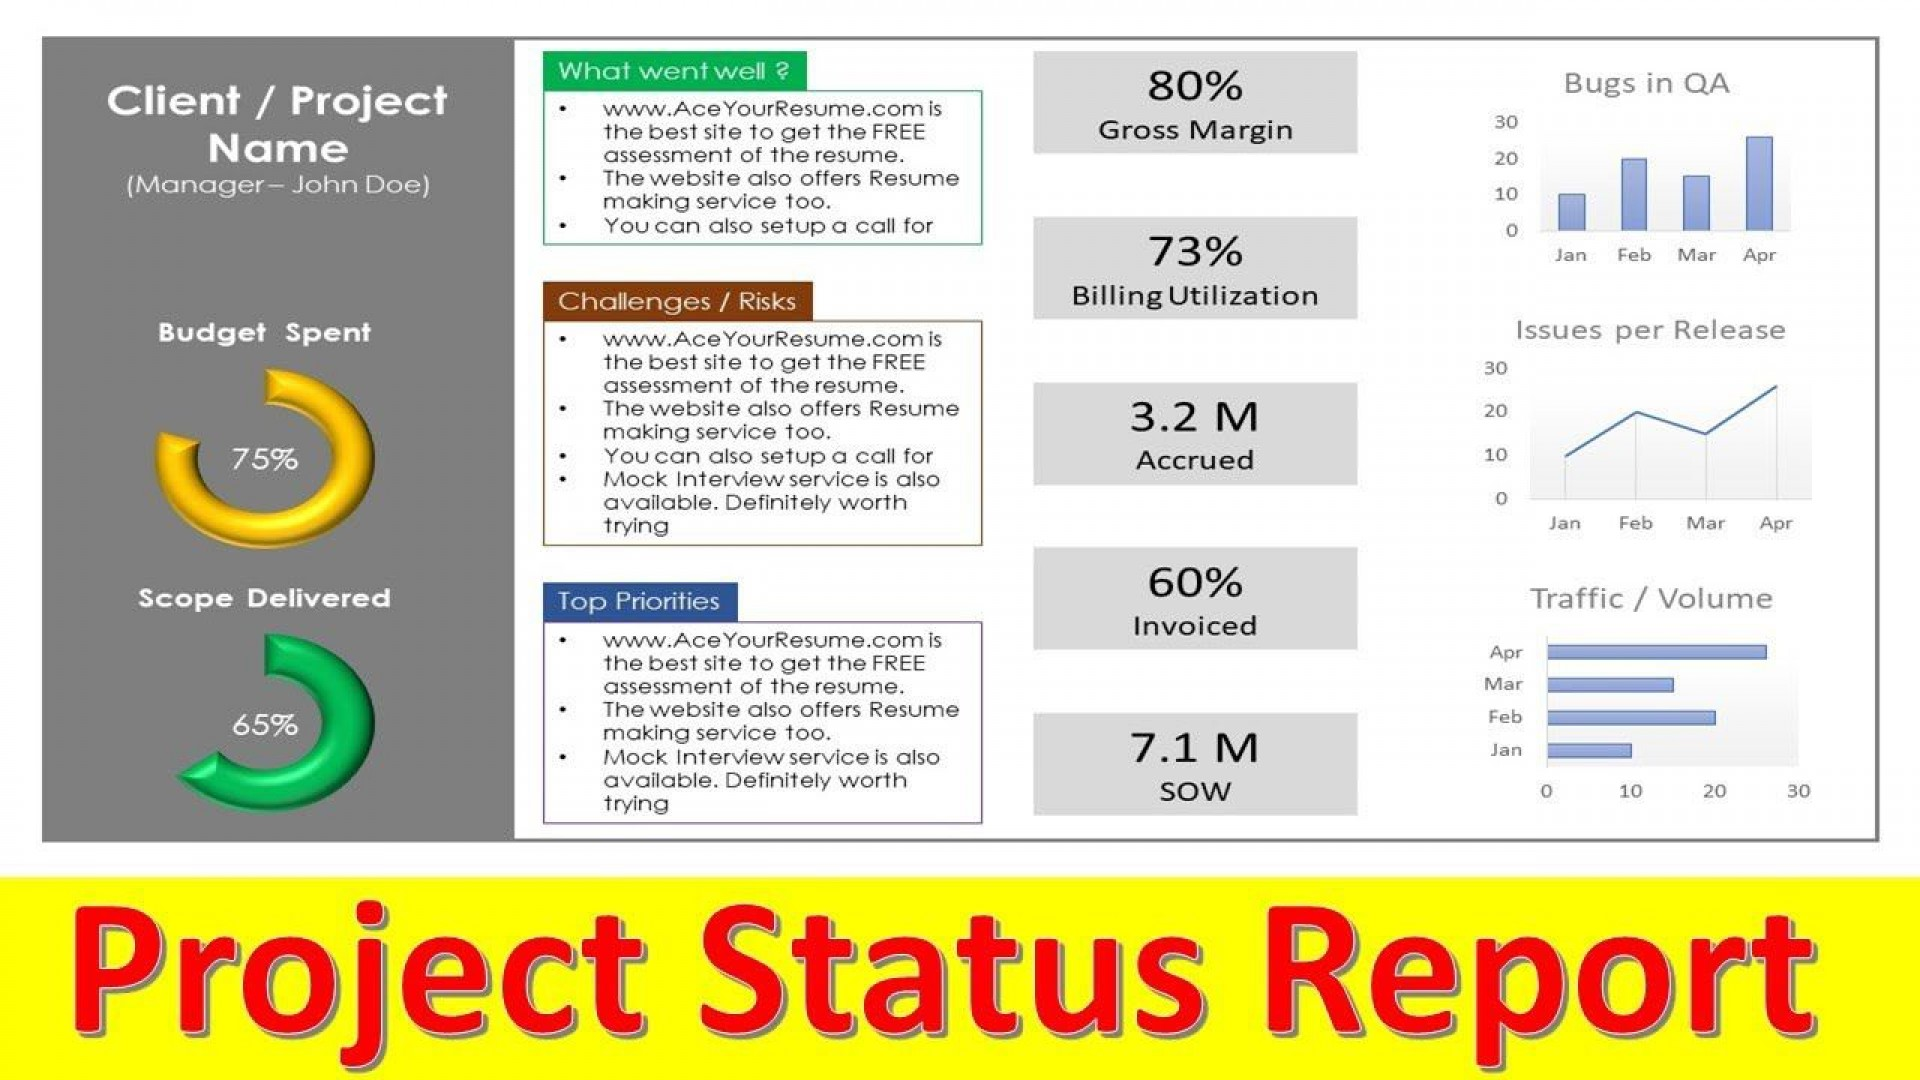 001 Striking Project Management Statu Report Template Ppt Photo  Template+powerpoint Weekly1920